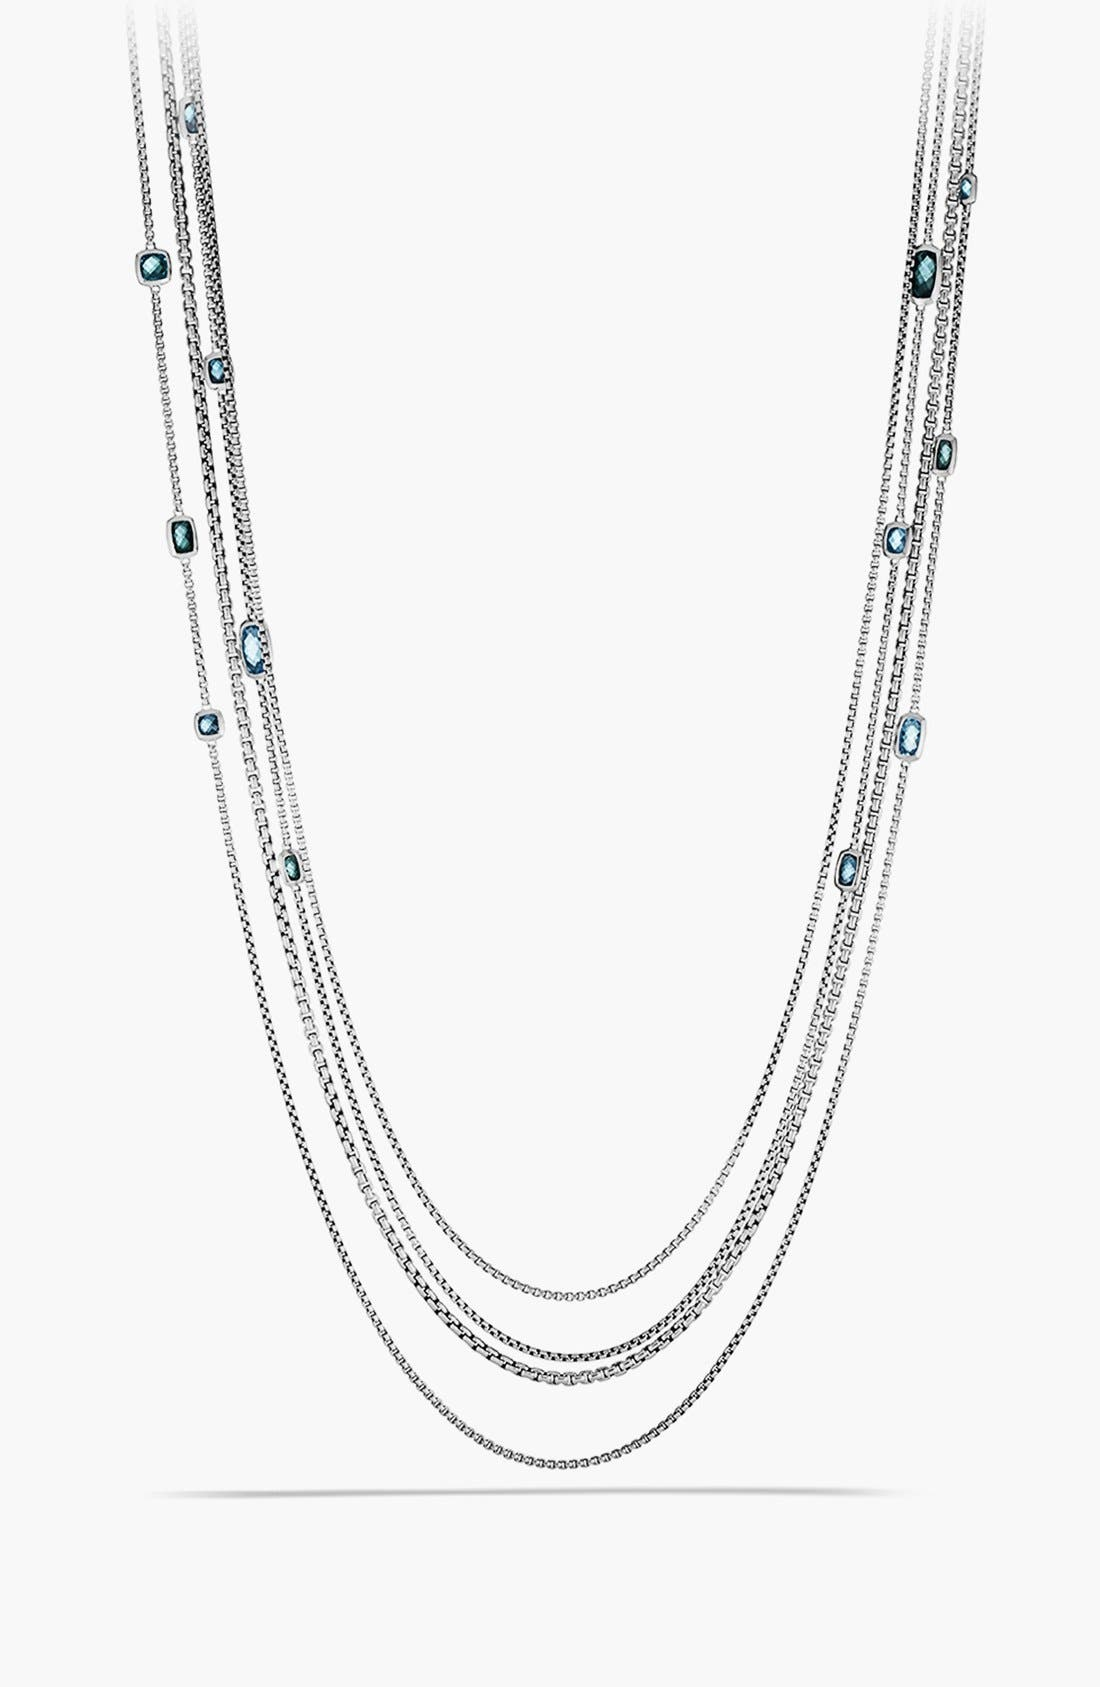 Main Image - David Yurman 'Confetti' Station Necklace with Blue Topaz and Hampton Blue Topaz